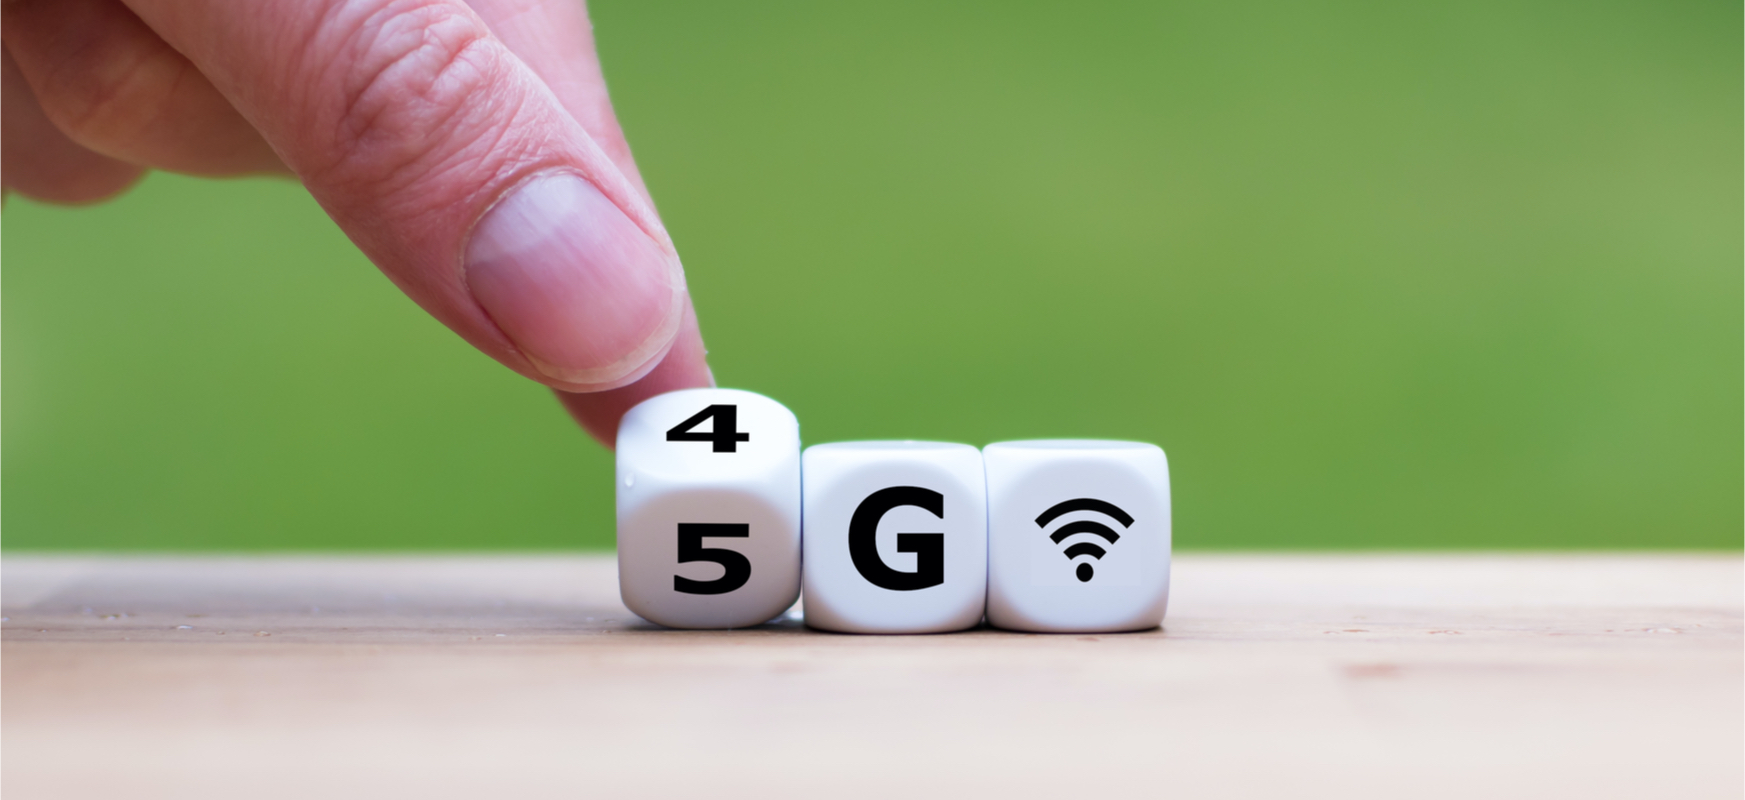 The operators have made 5G luxury in Poland for selected ones. It came to Excel that it would pay off